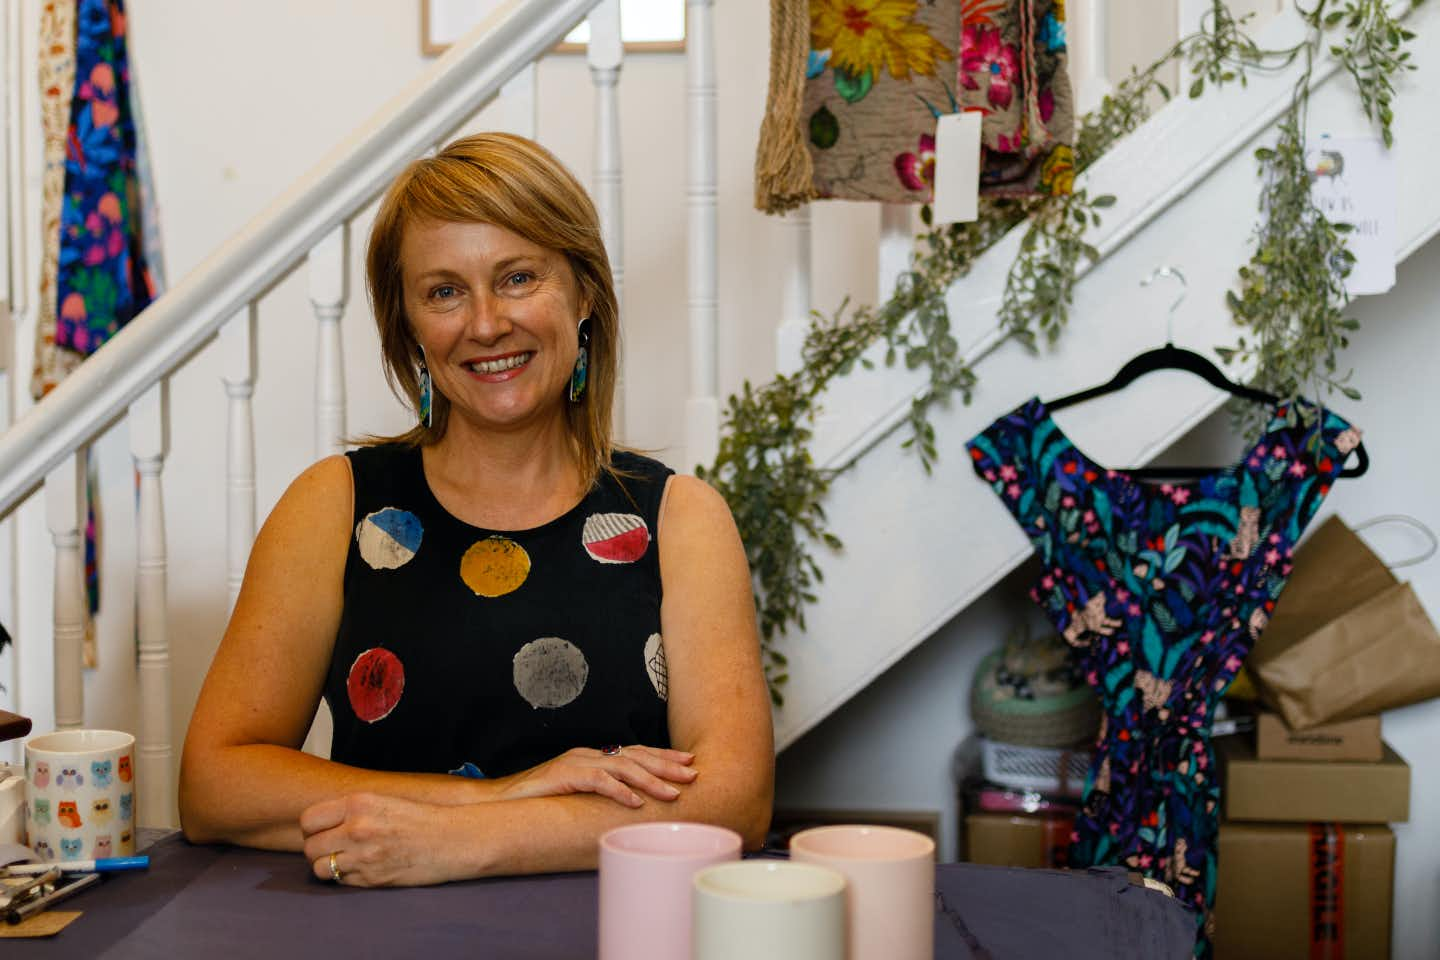 Andrea Hurley, owner of Hattie And The Wolf in Ballarat